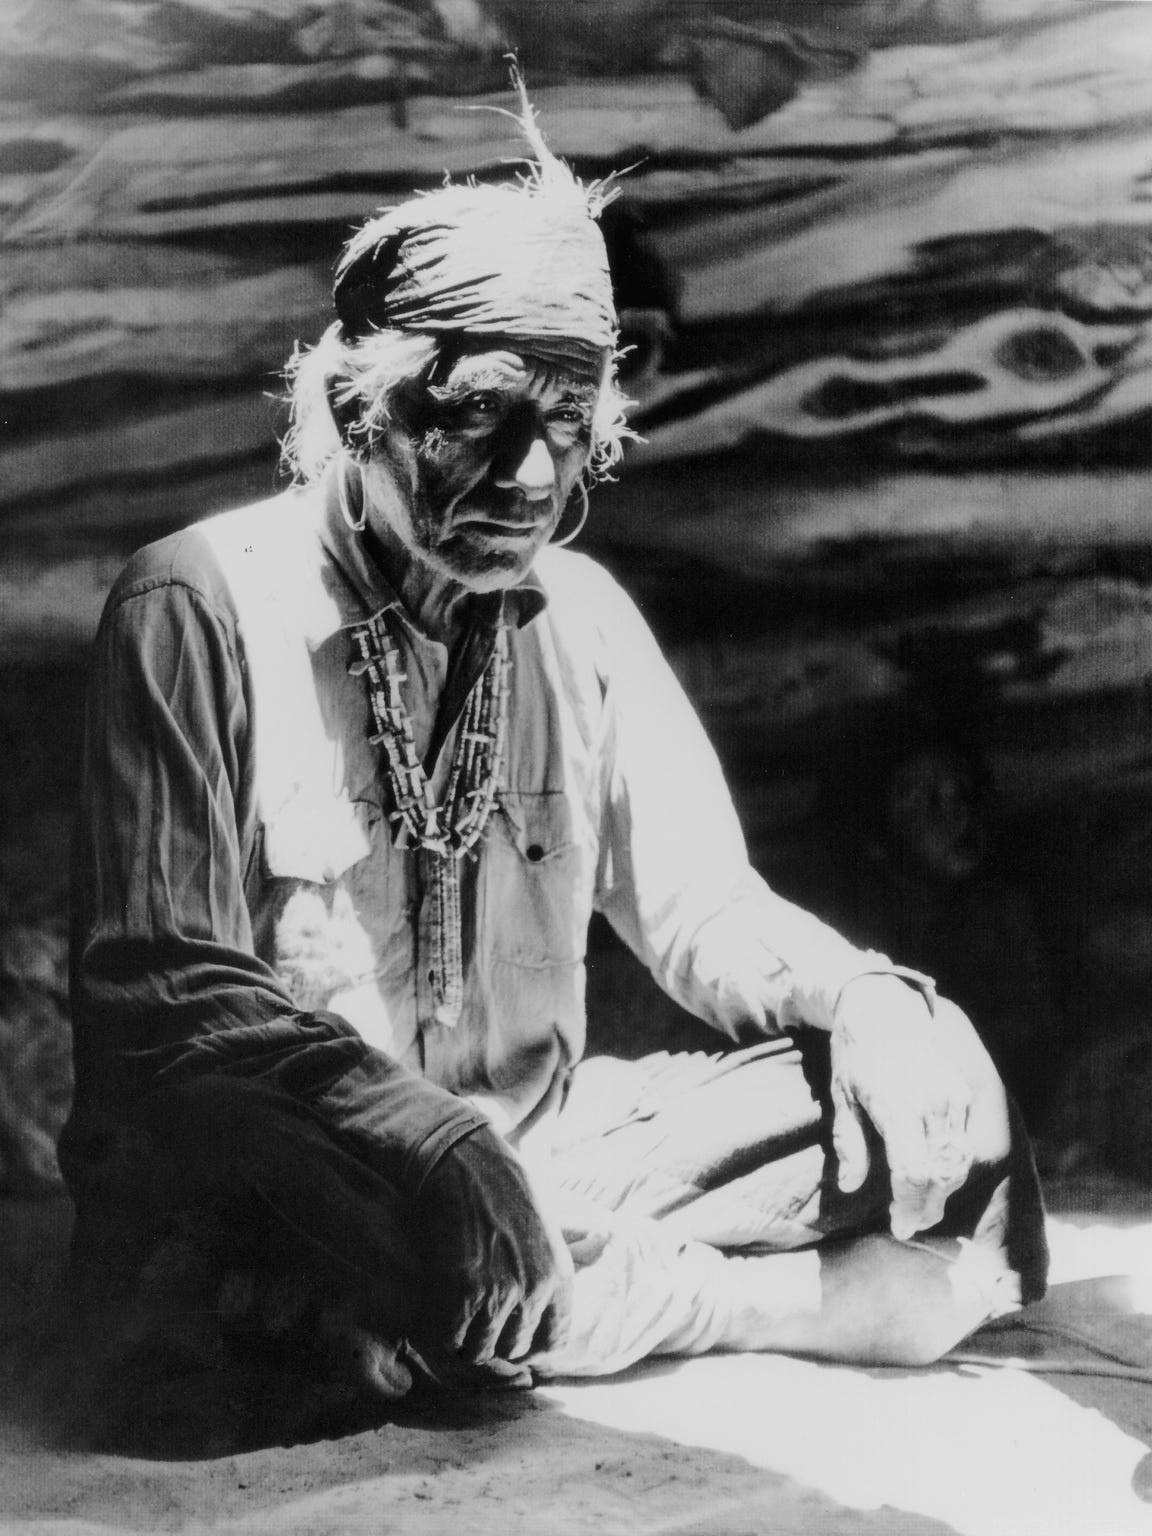 """The Chief,"" 1948.  Goldwater said: ""This man is a Navajo who lived up in the Paiute Country, which is north of Navajo Mountain in Utah. I introduced myself to him and he invited me into his hogan. I just call it 'The Chief.'"""